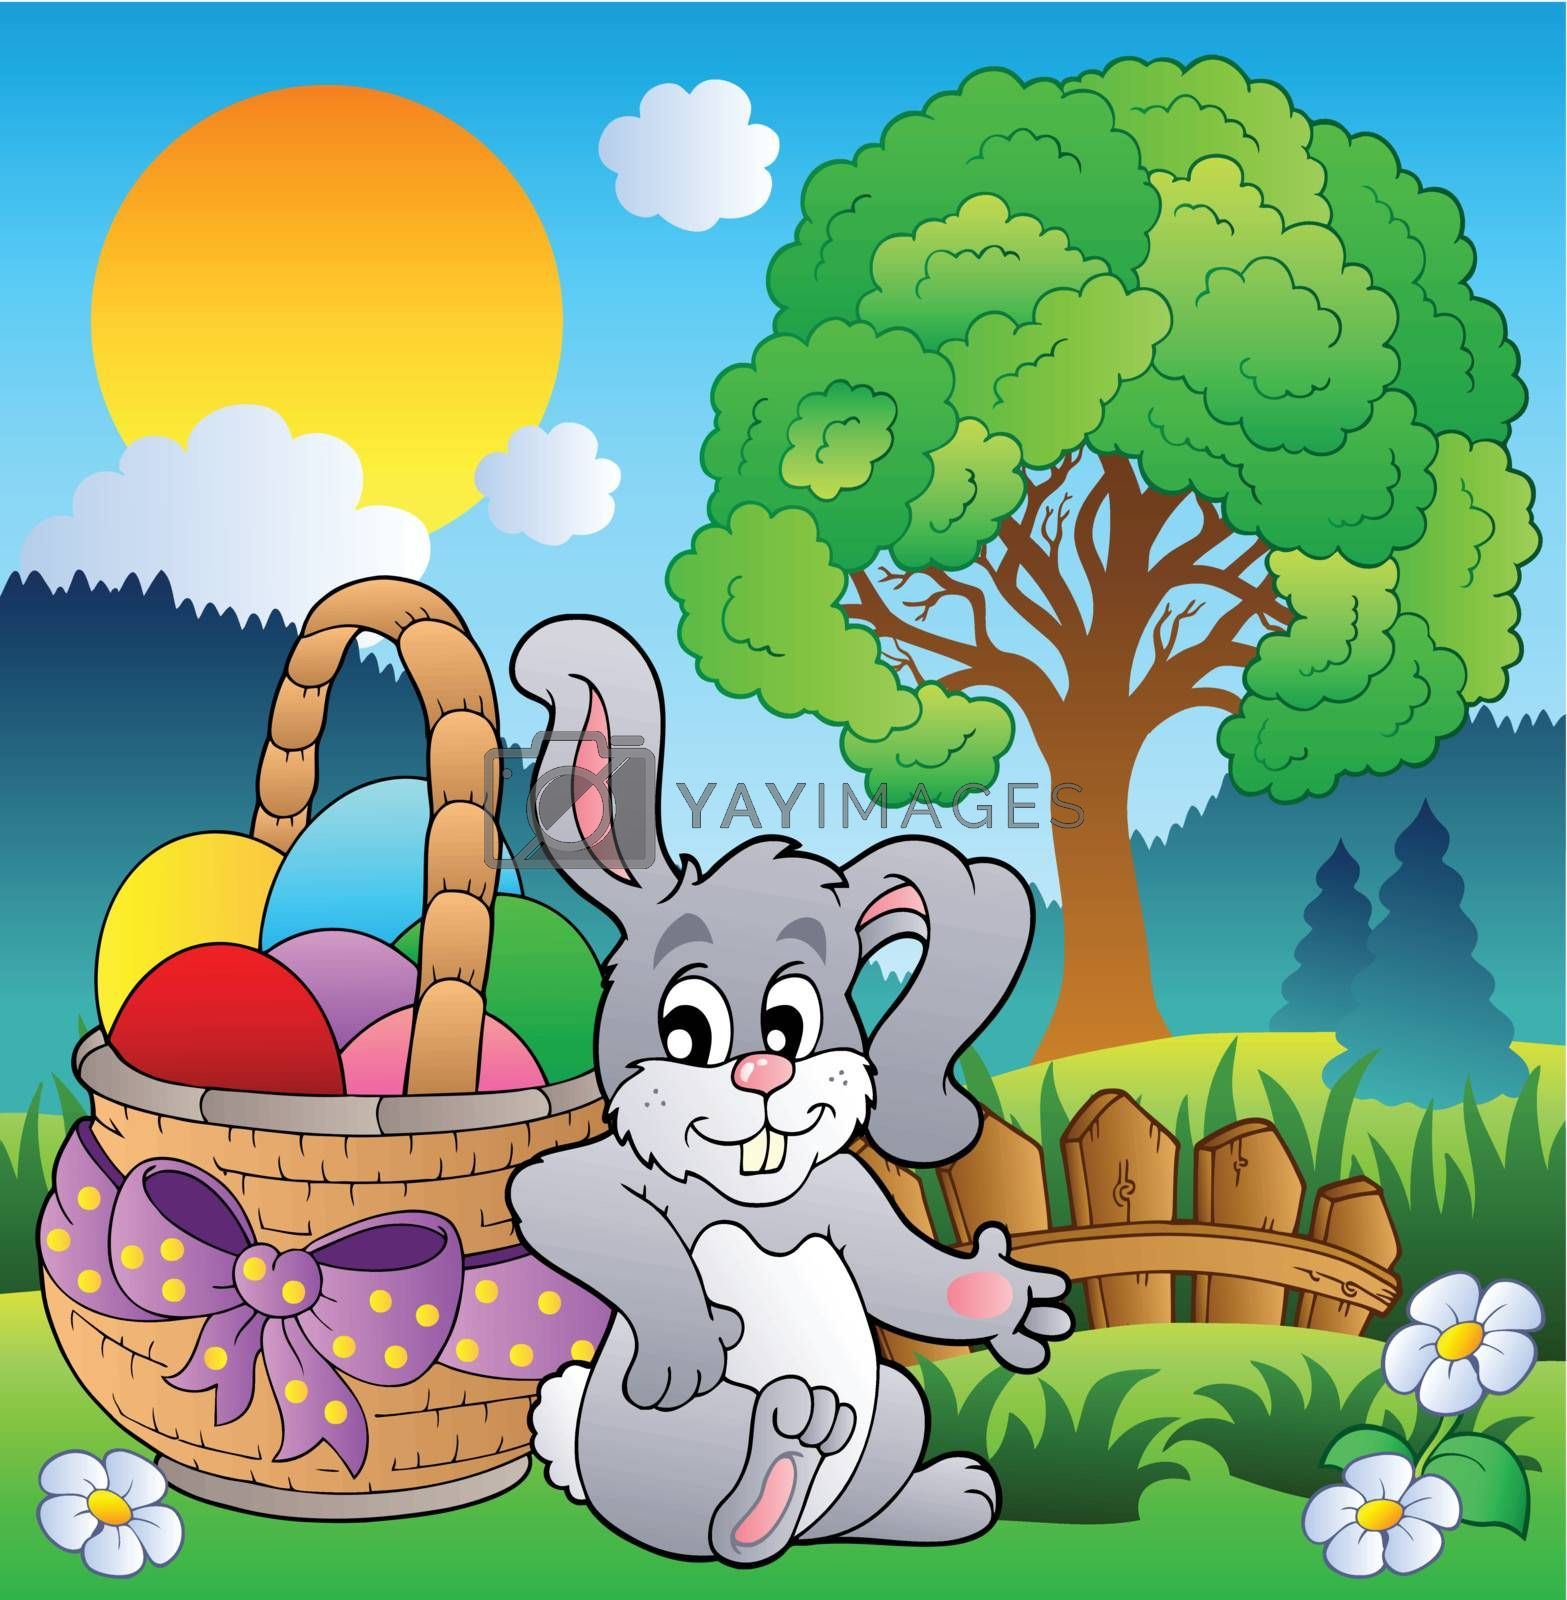 Spring meadow with bunny and basket - vector illustration.